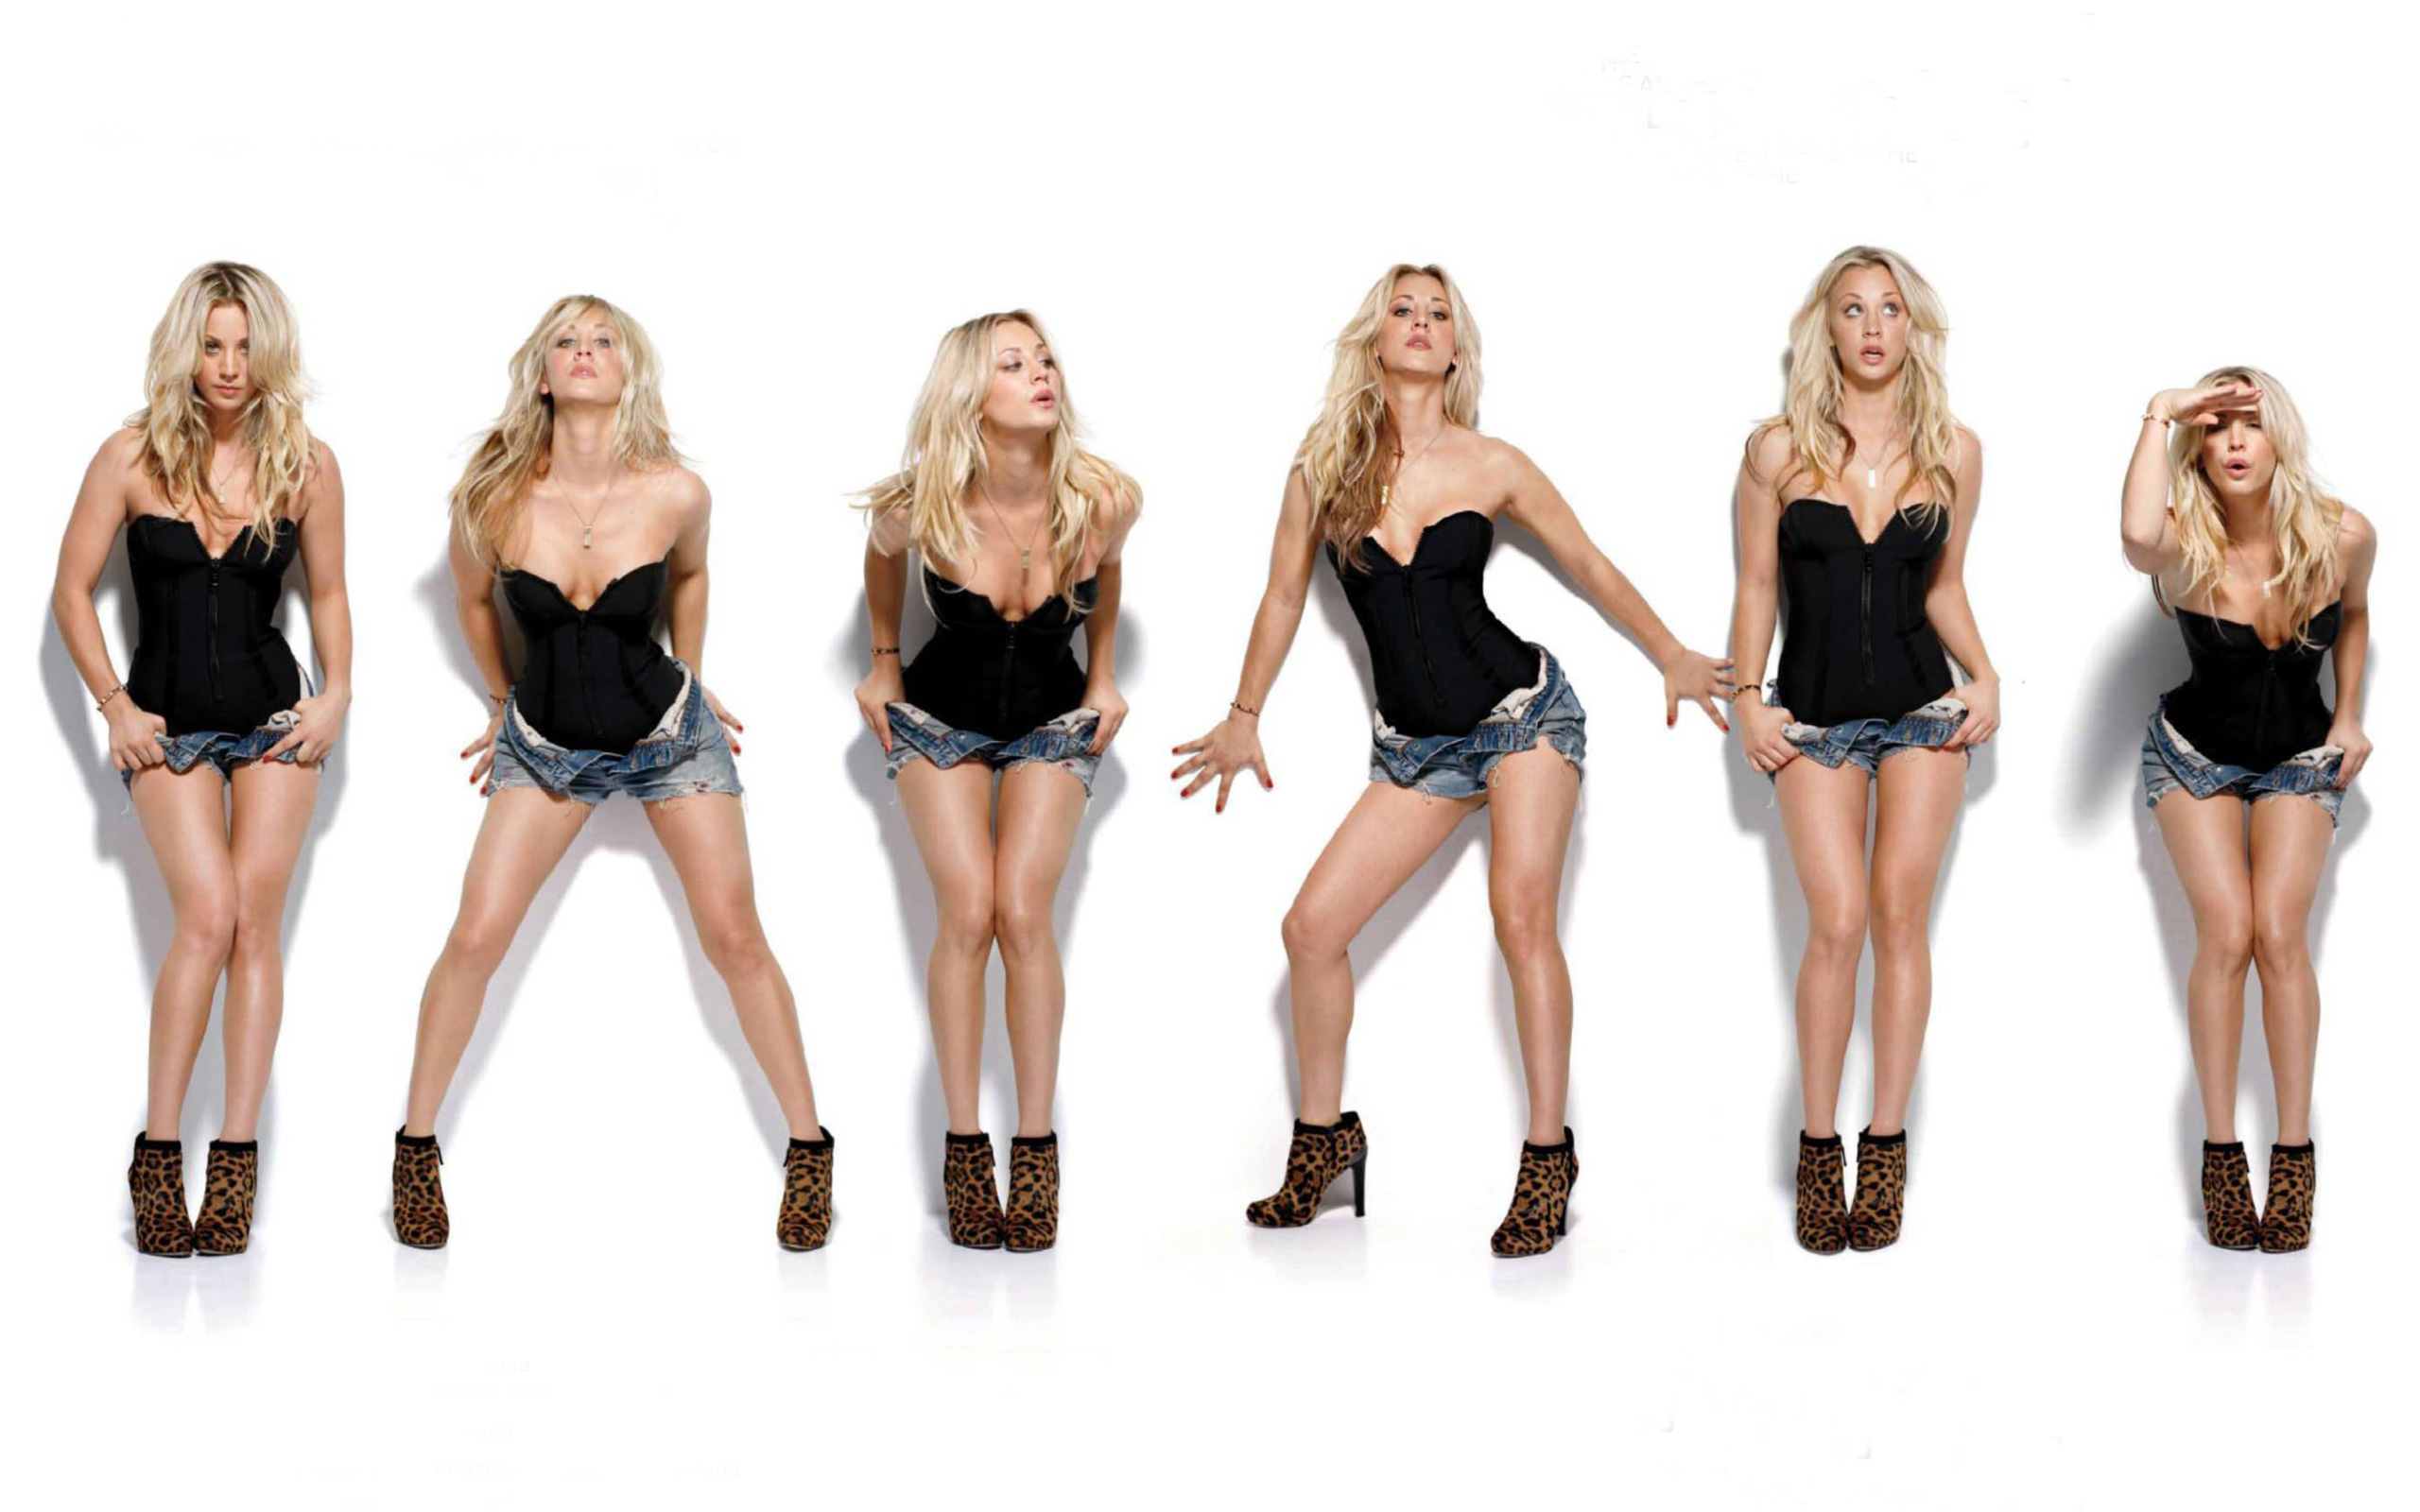 Kaley cuoco maxim shoot wallpaper picture ebaums world kaley cuoco maxim shoot wallpaper voltagebd Image collections